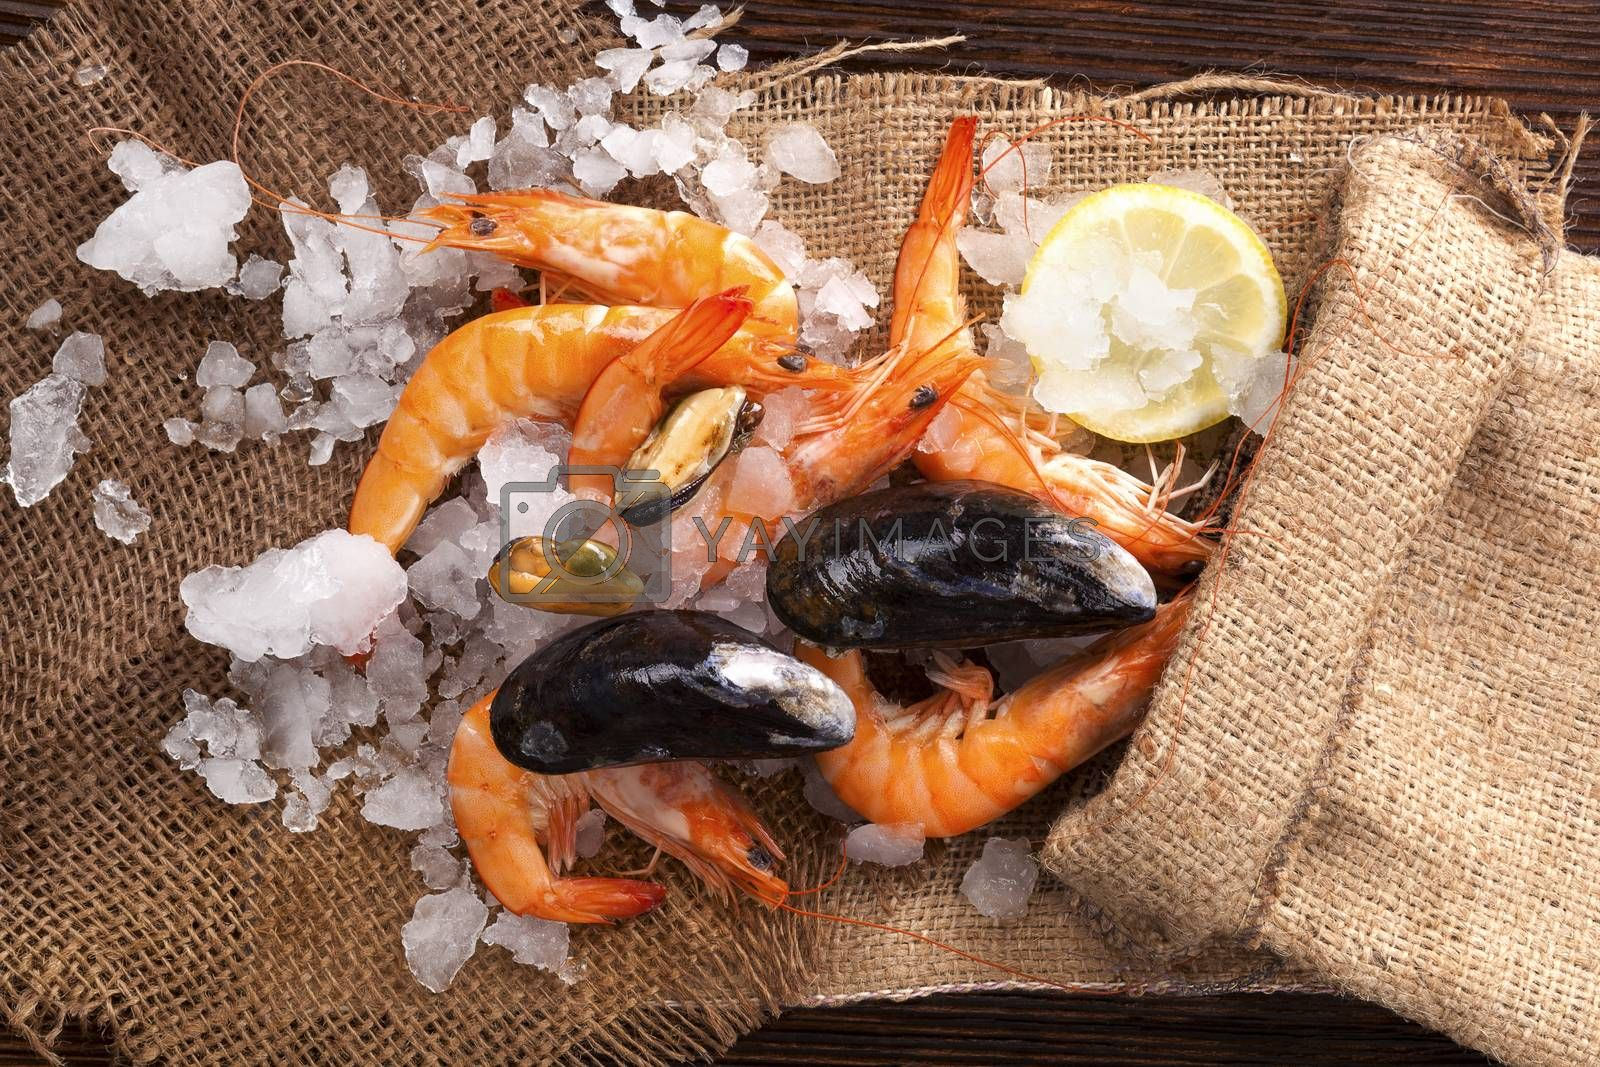 Fresh shrimp with lemon on ice in brown burlap bag on wooden table, top view. Culinary seafood eating.